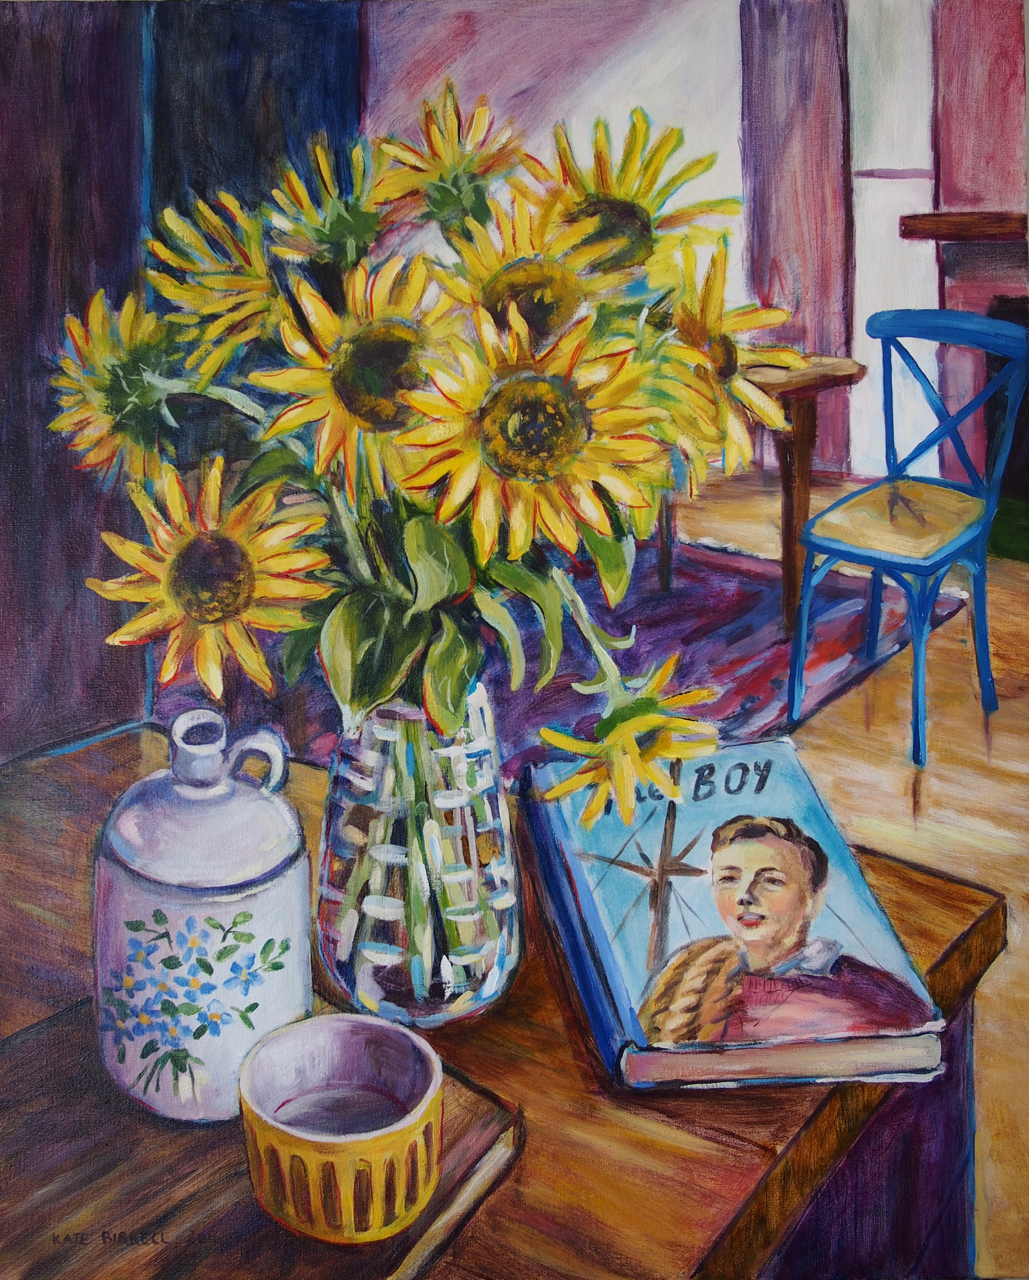 Sunflowers with Old Book and Other Things